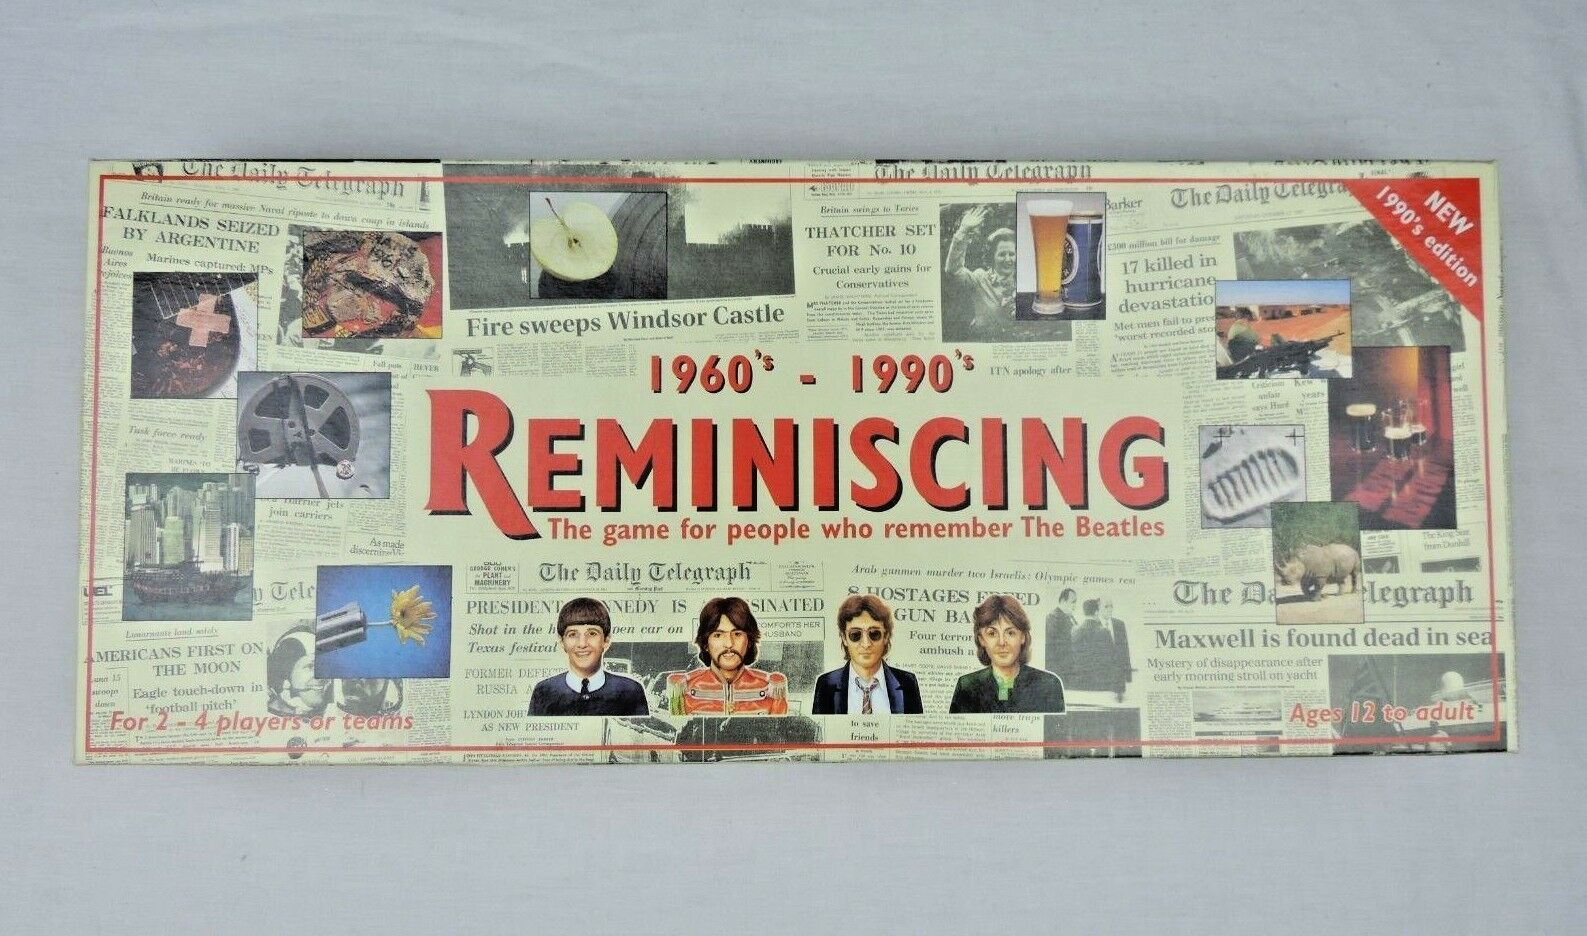 Reminiscing 1960s 1960s 1960s - 1990s Board Game 243d86